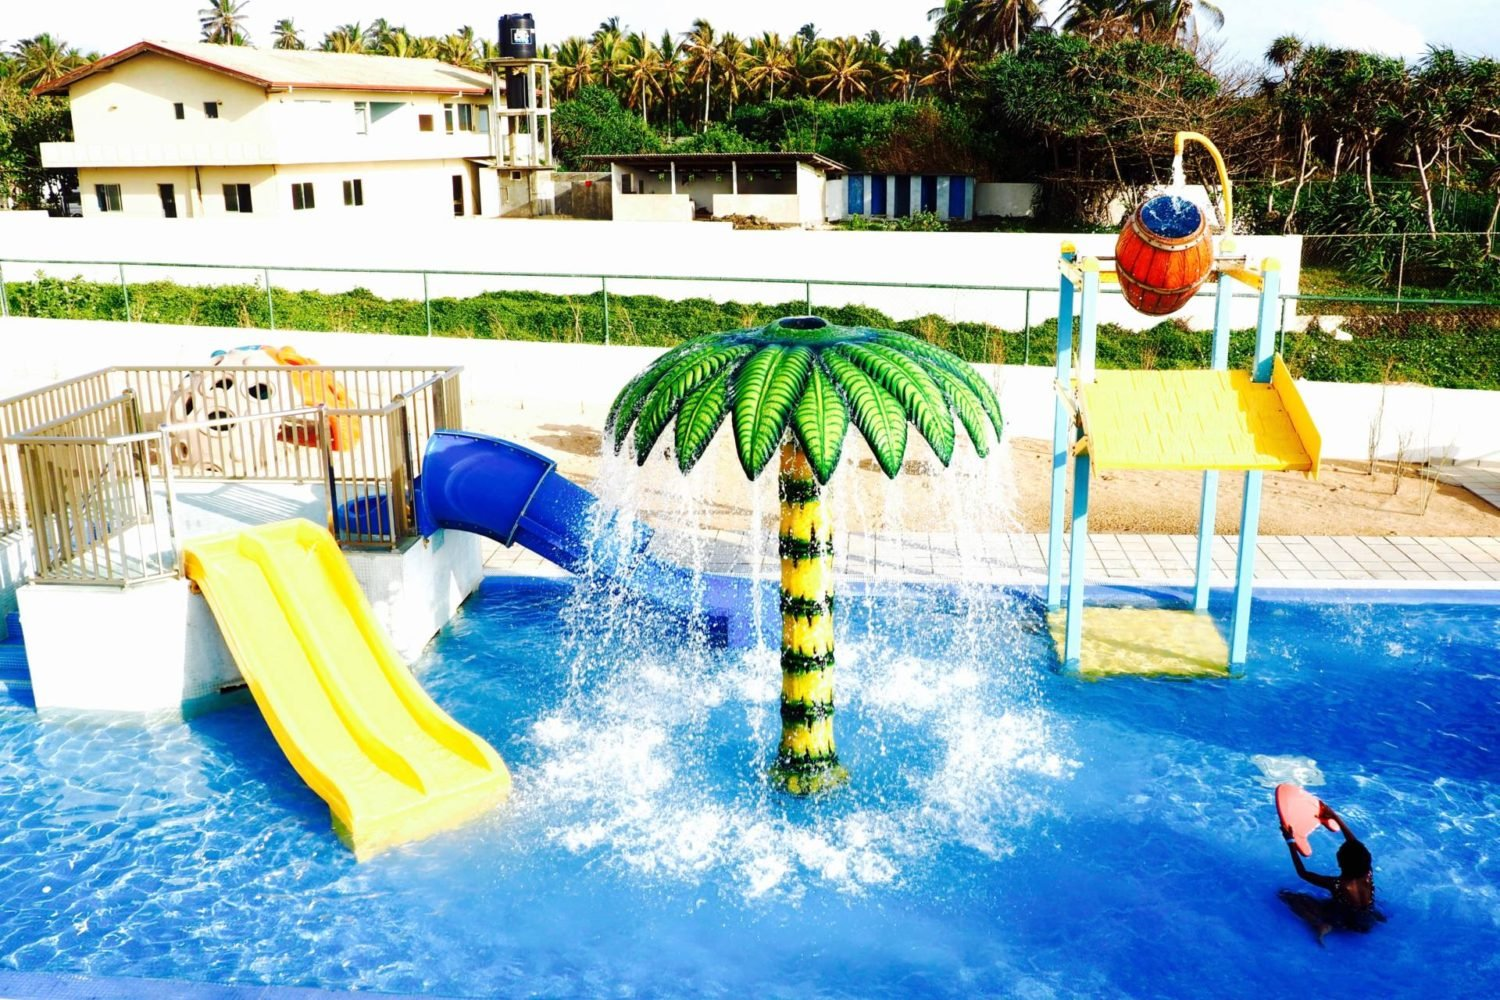 Riu hotel sri lanka review kids pool while i 39 m young Child friendly hotels uk swimming pool